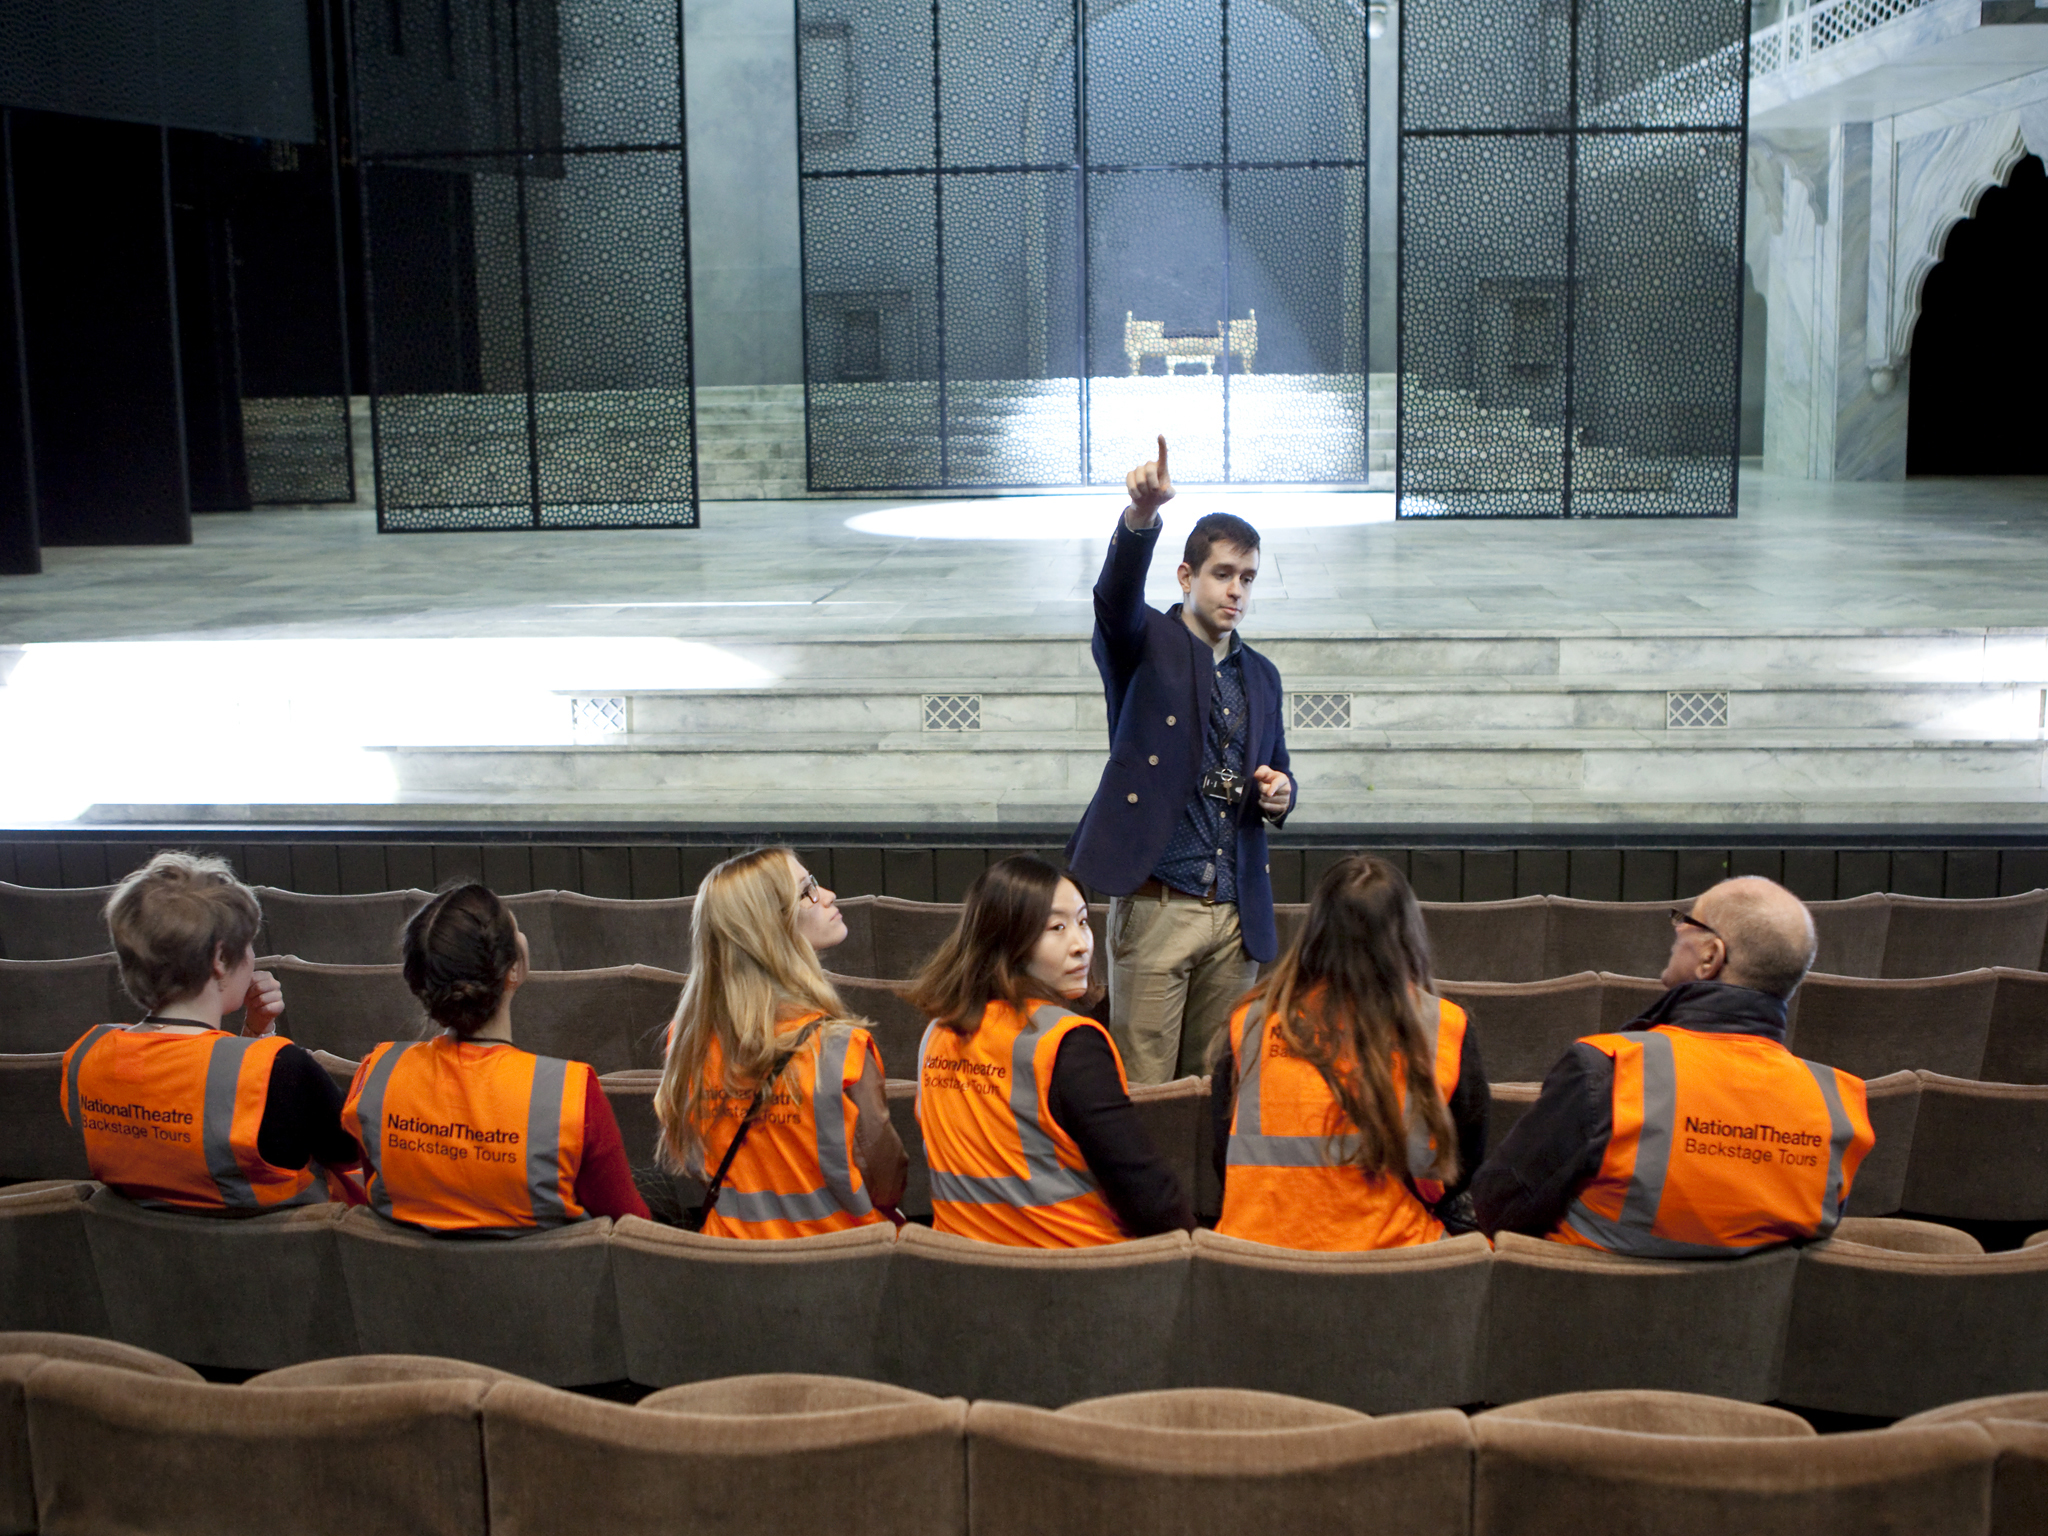 101 Things To Do in London: National Theatre Tour